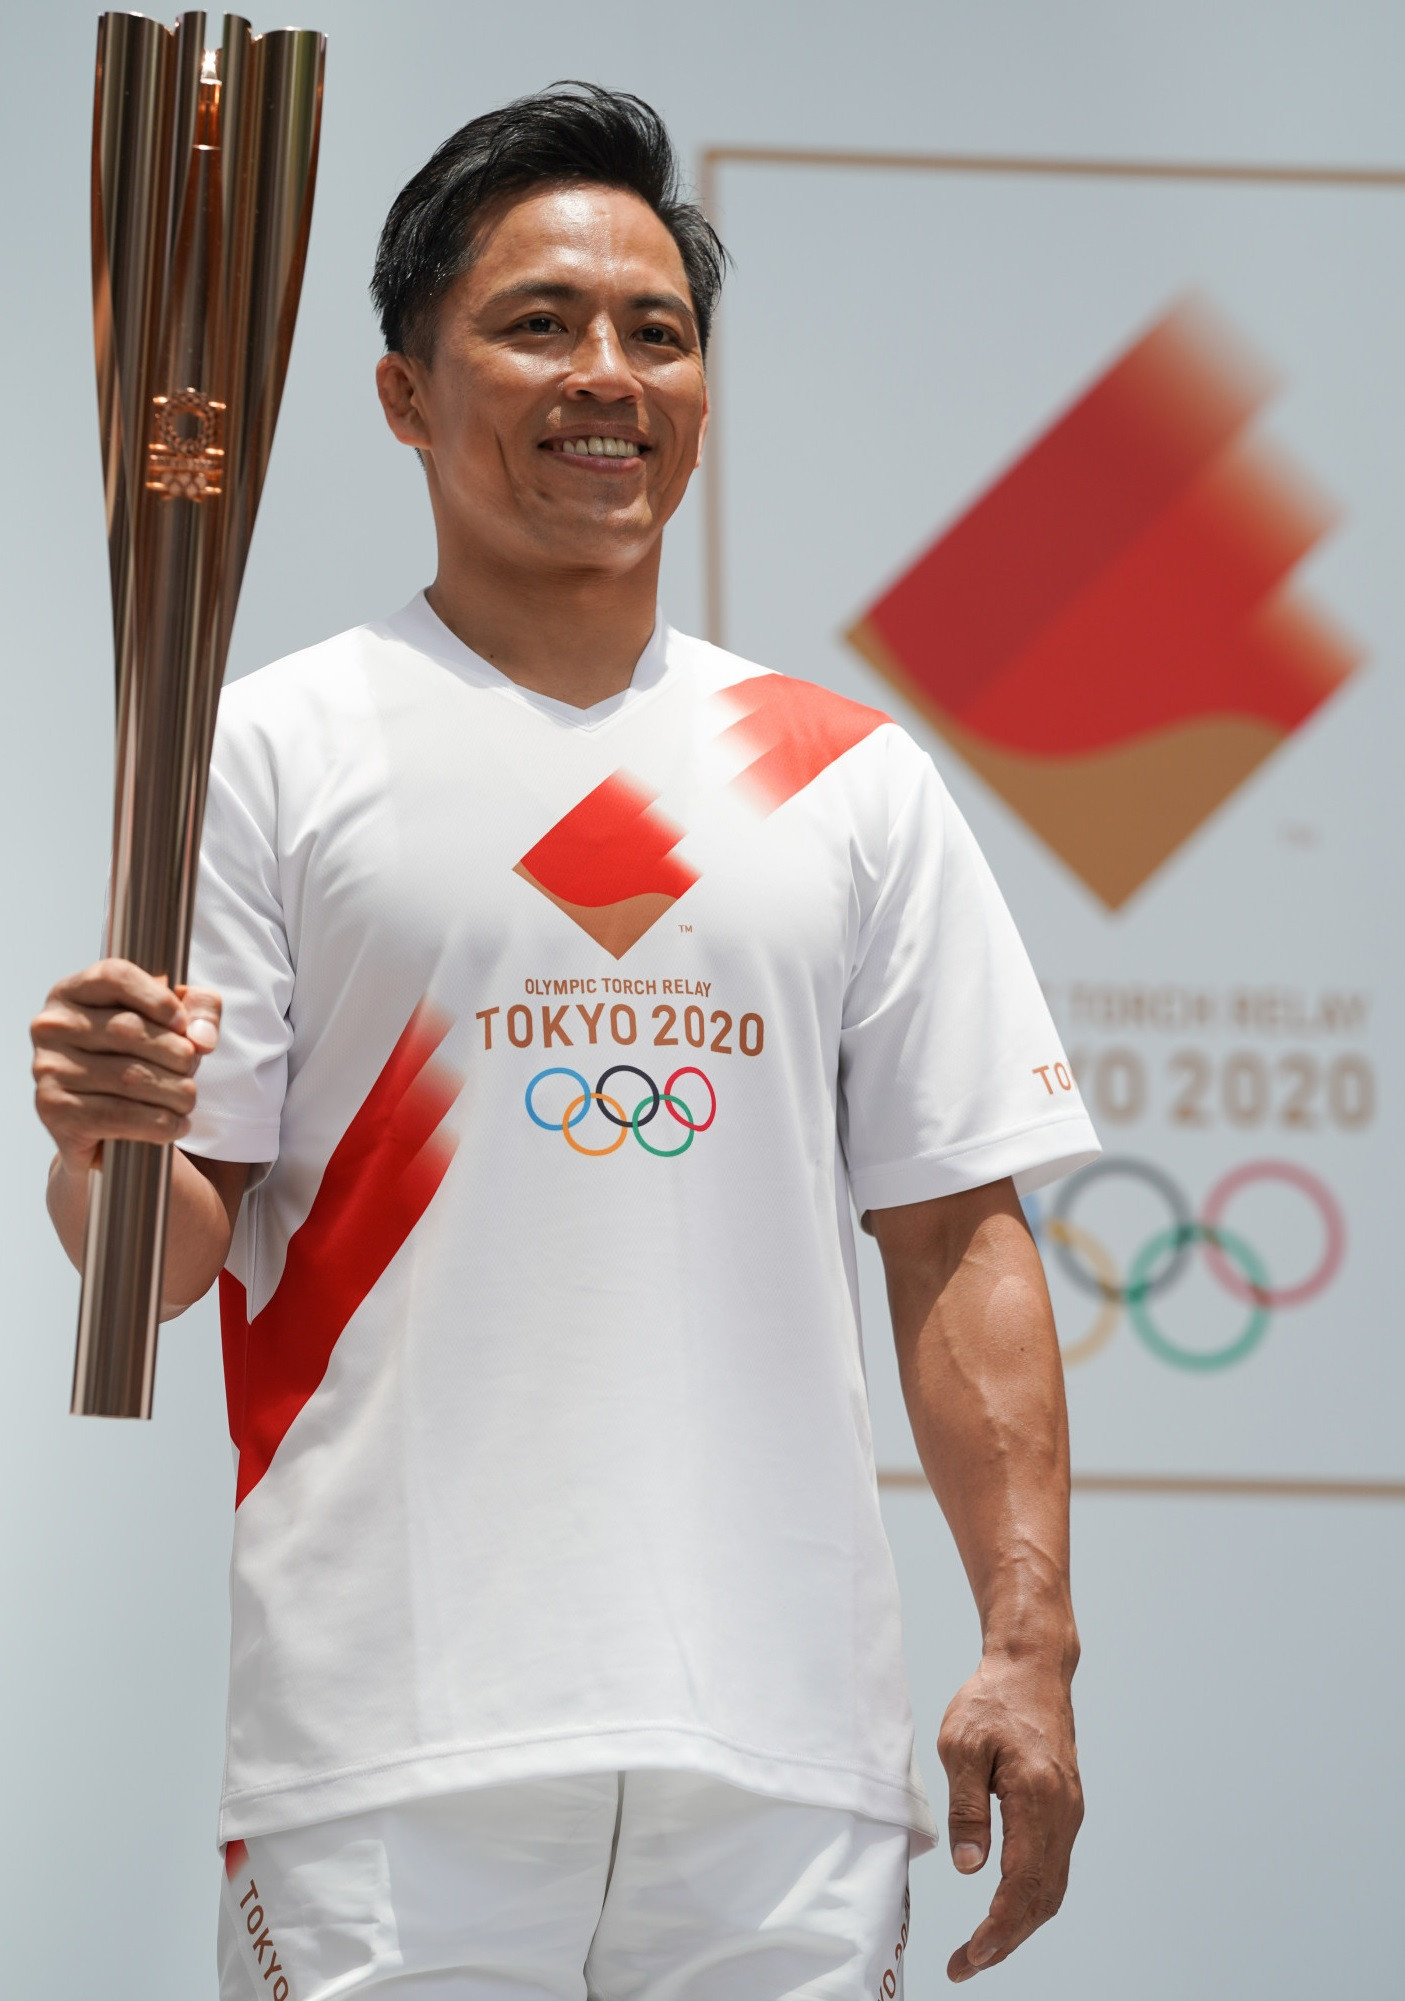 Judoka Tadahiro Nomura is playing his part in bringing the Olympic flame to Tokyo ©Getty Images